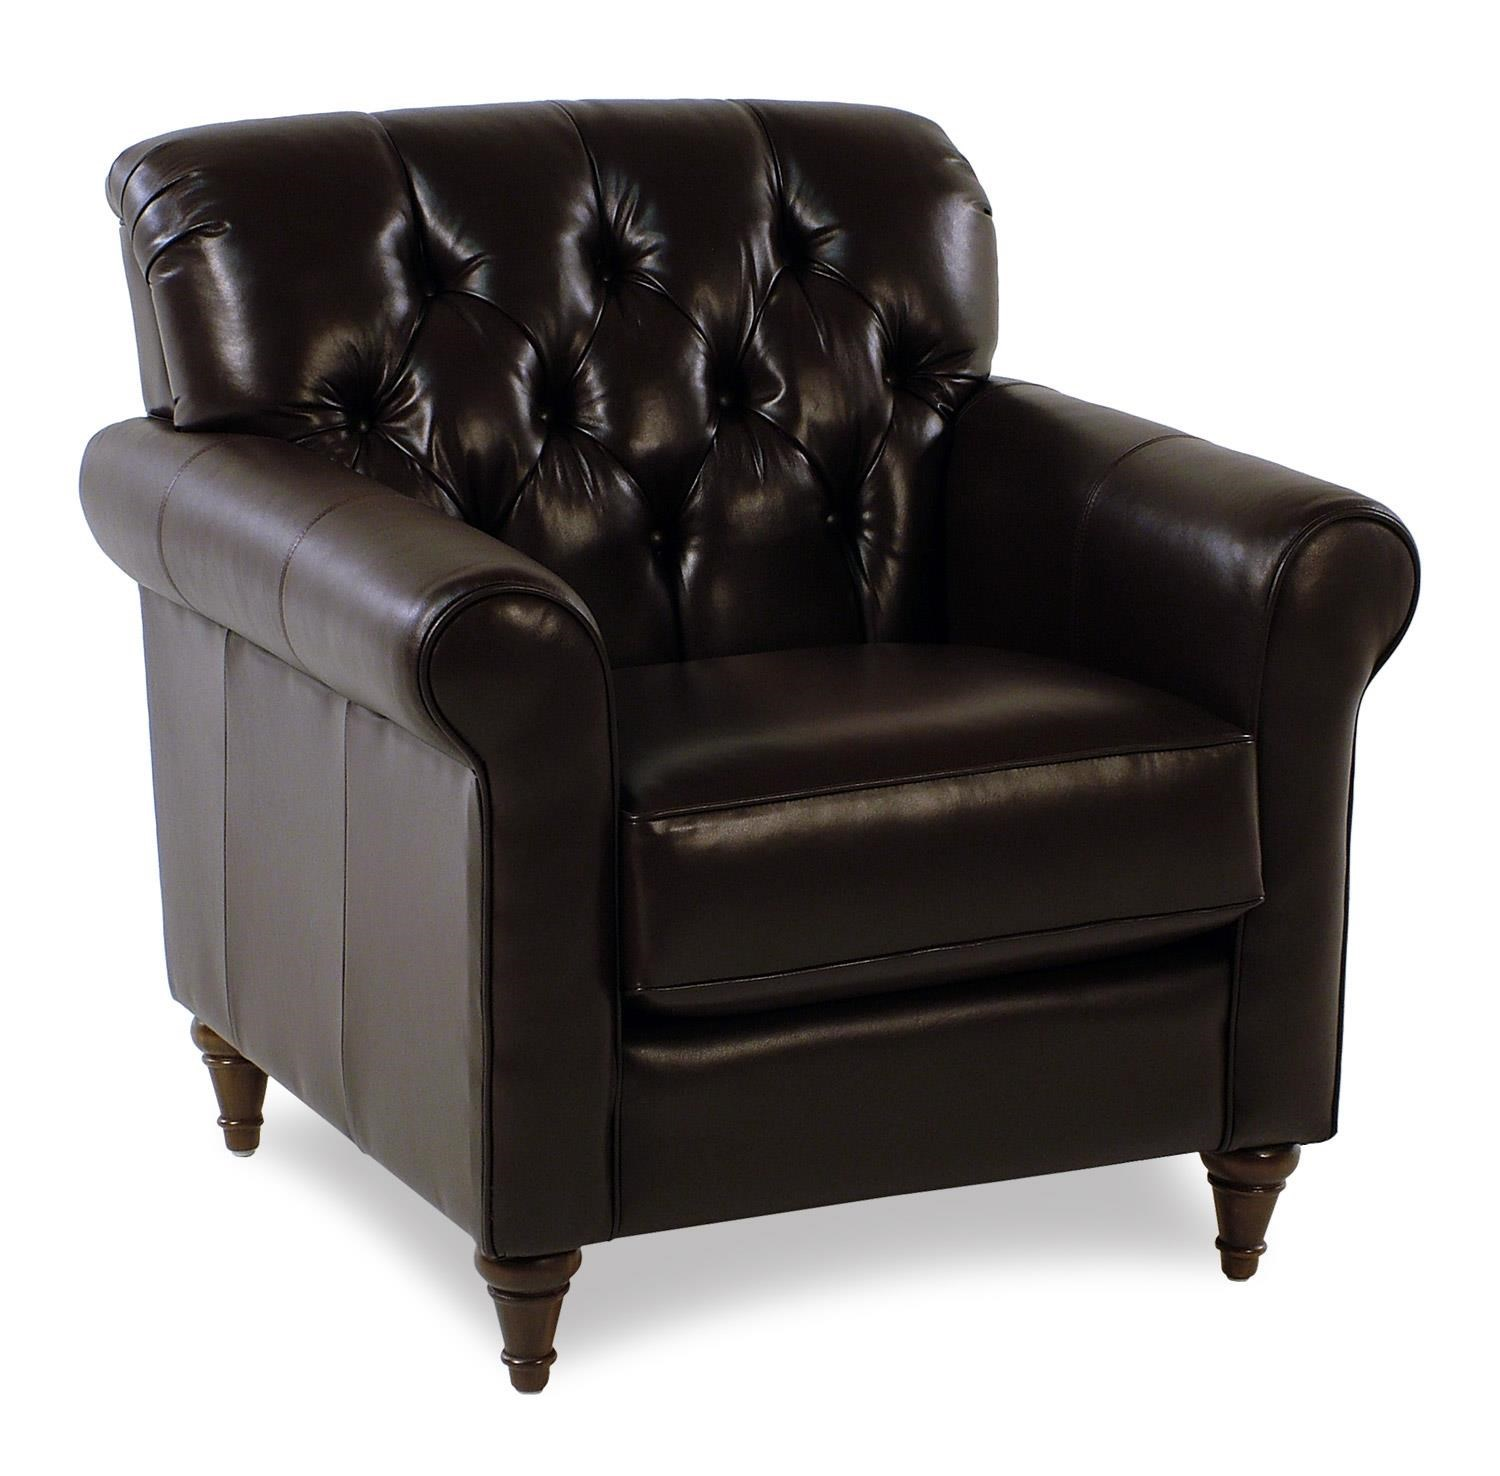 Decor Rest MaxwellTufted Leather Chair ...